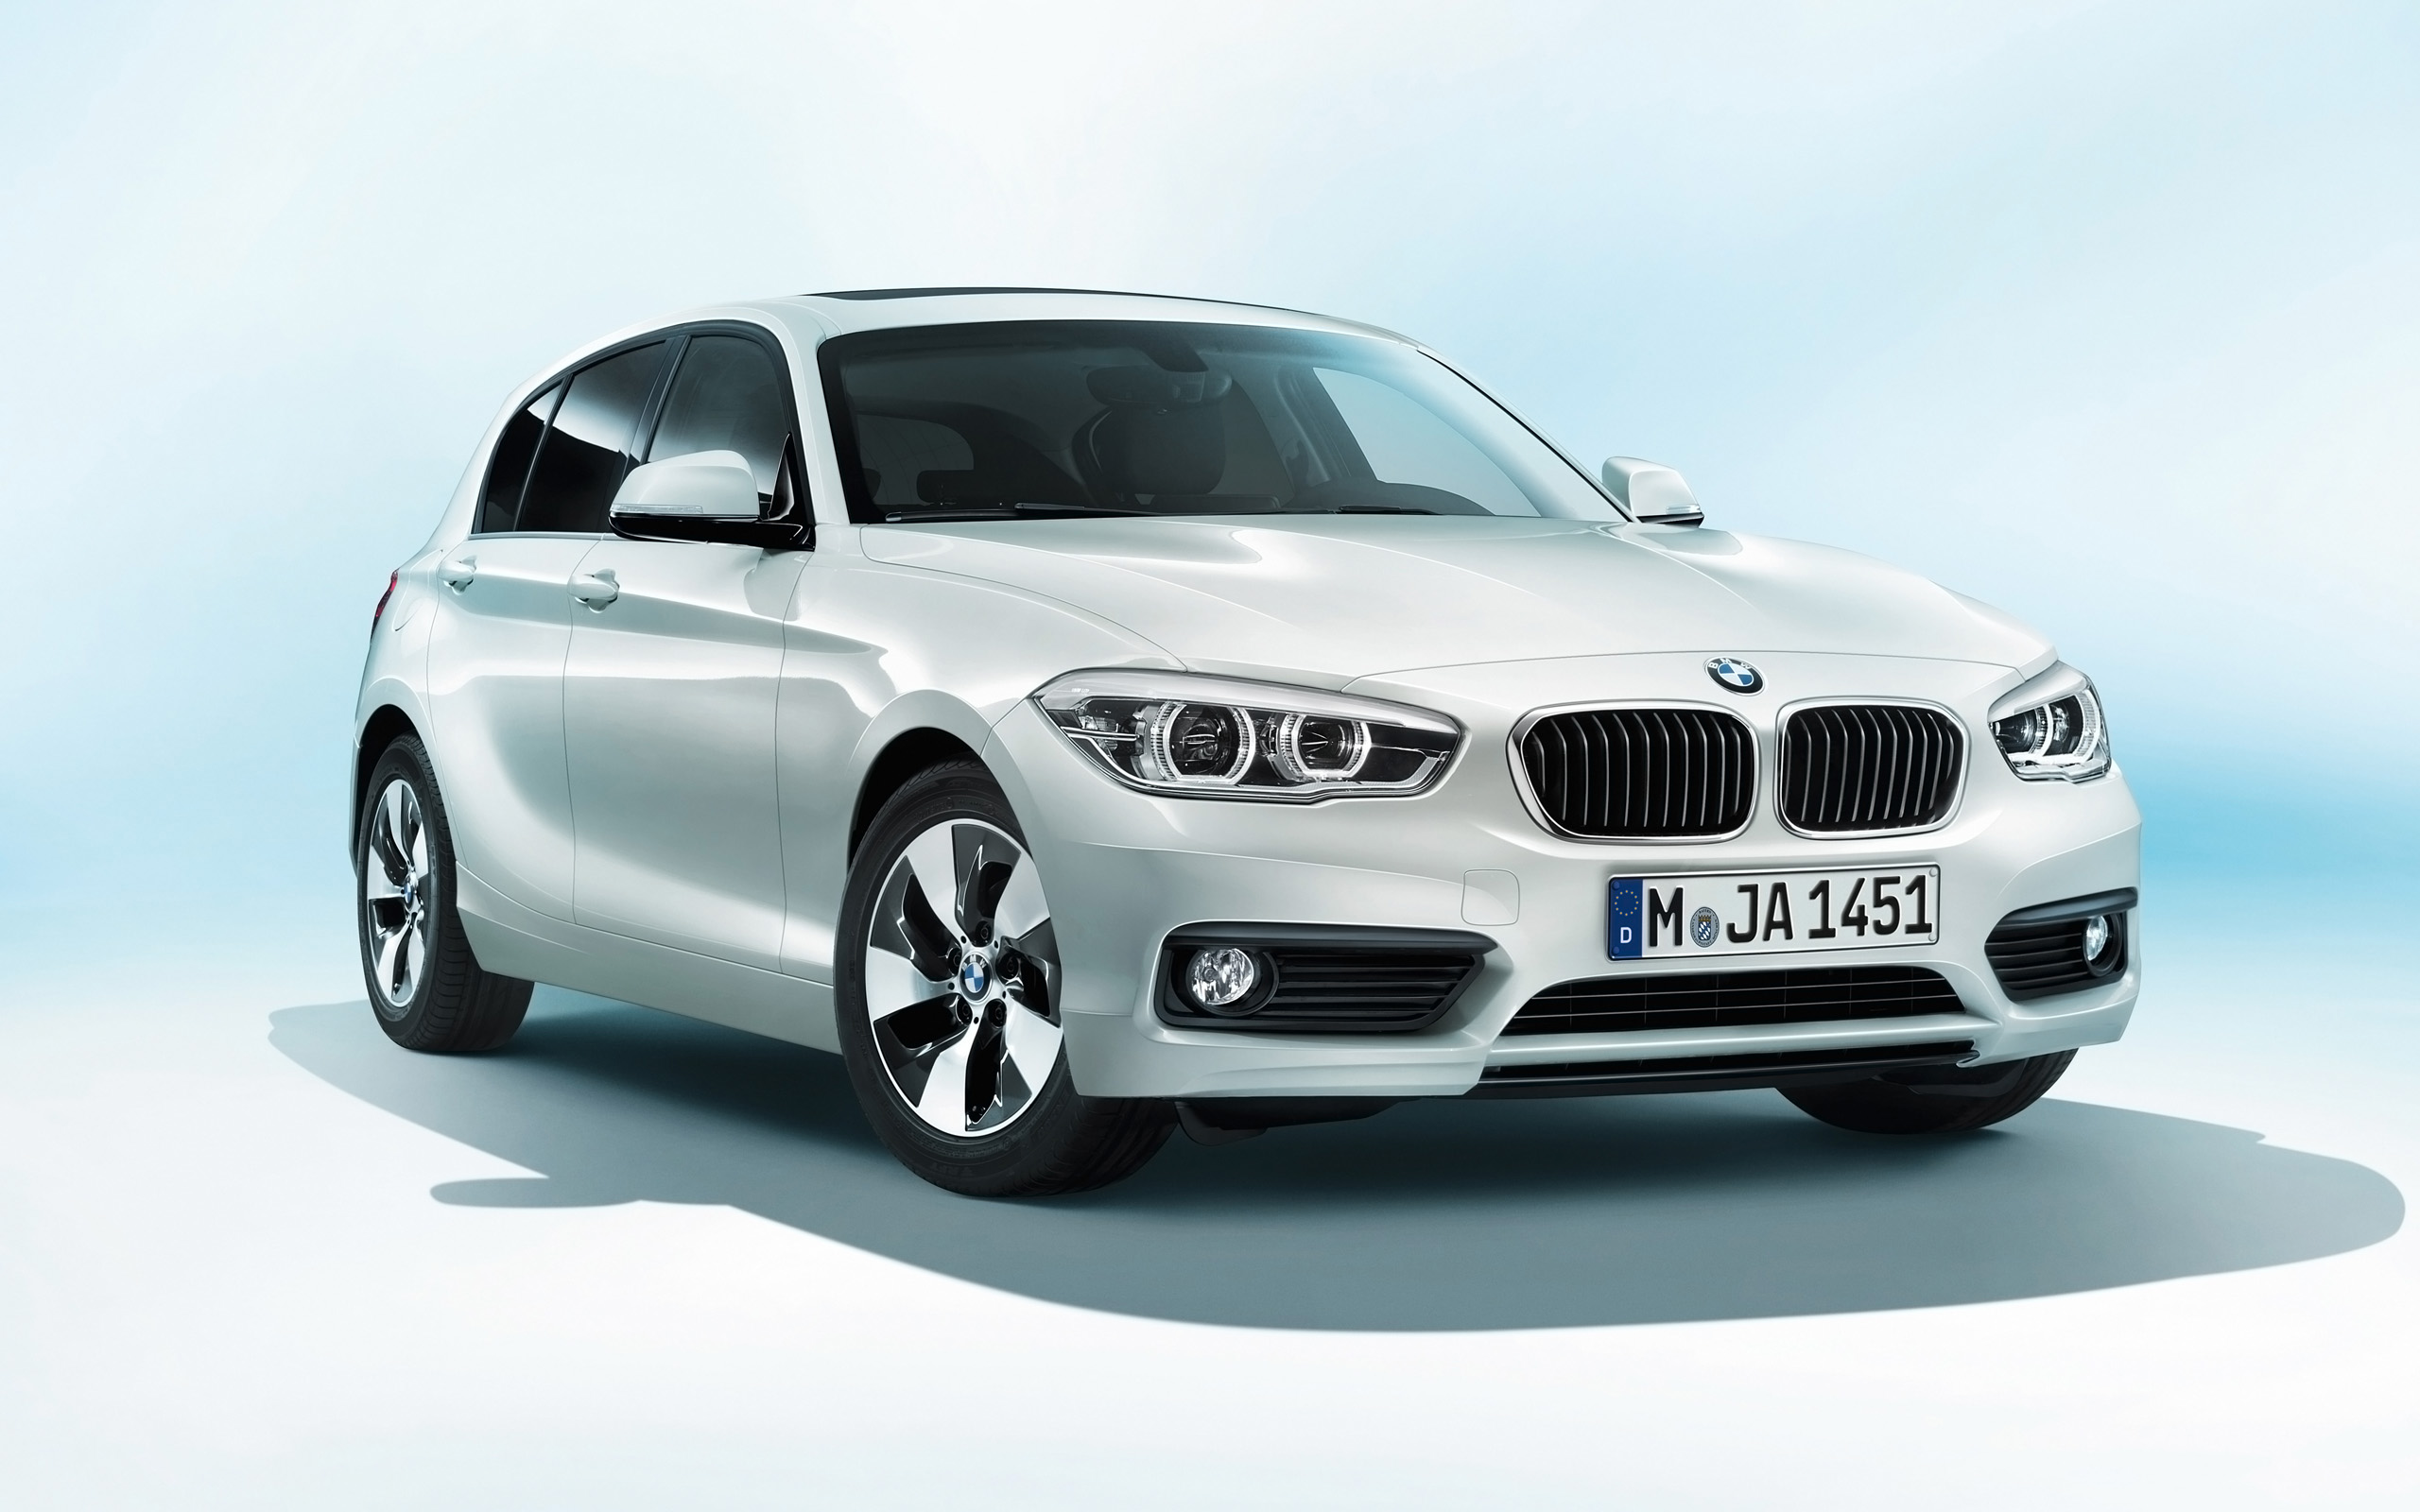 2015 bmw 1 series wallpaper hd car wallpapers id 5104. Black Bedroom Furniture Sets. Home Design Ideas